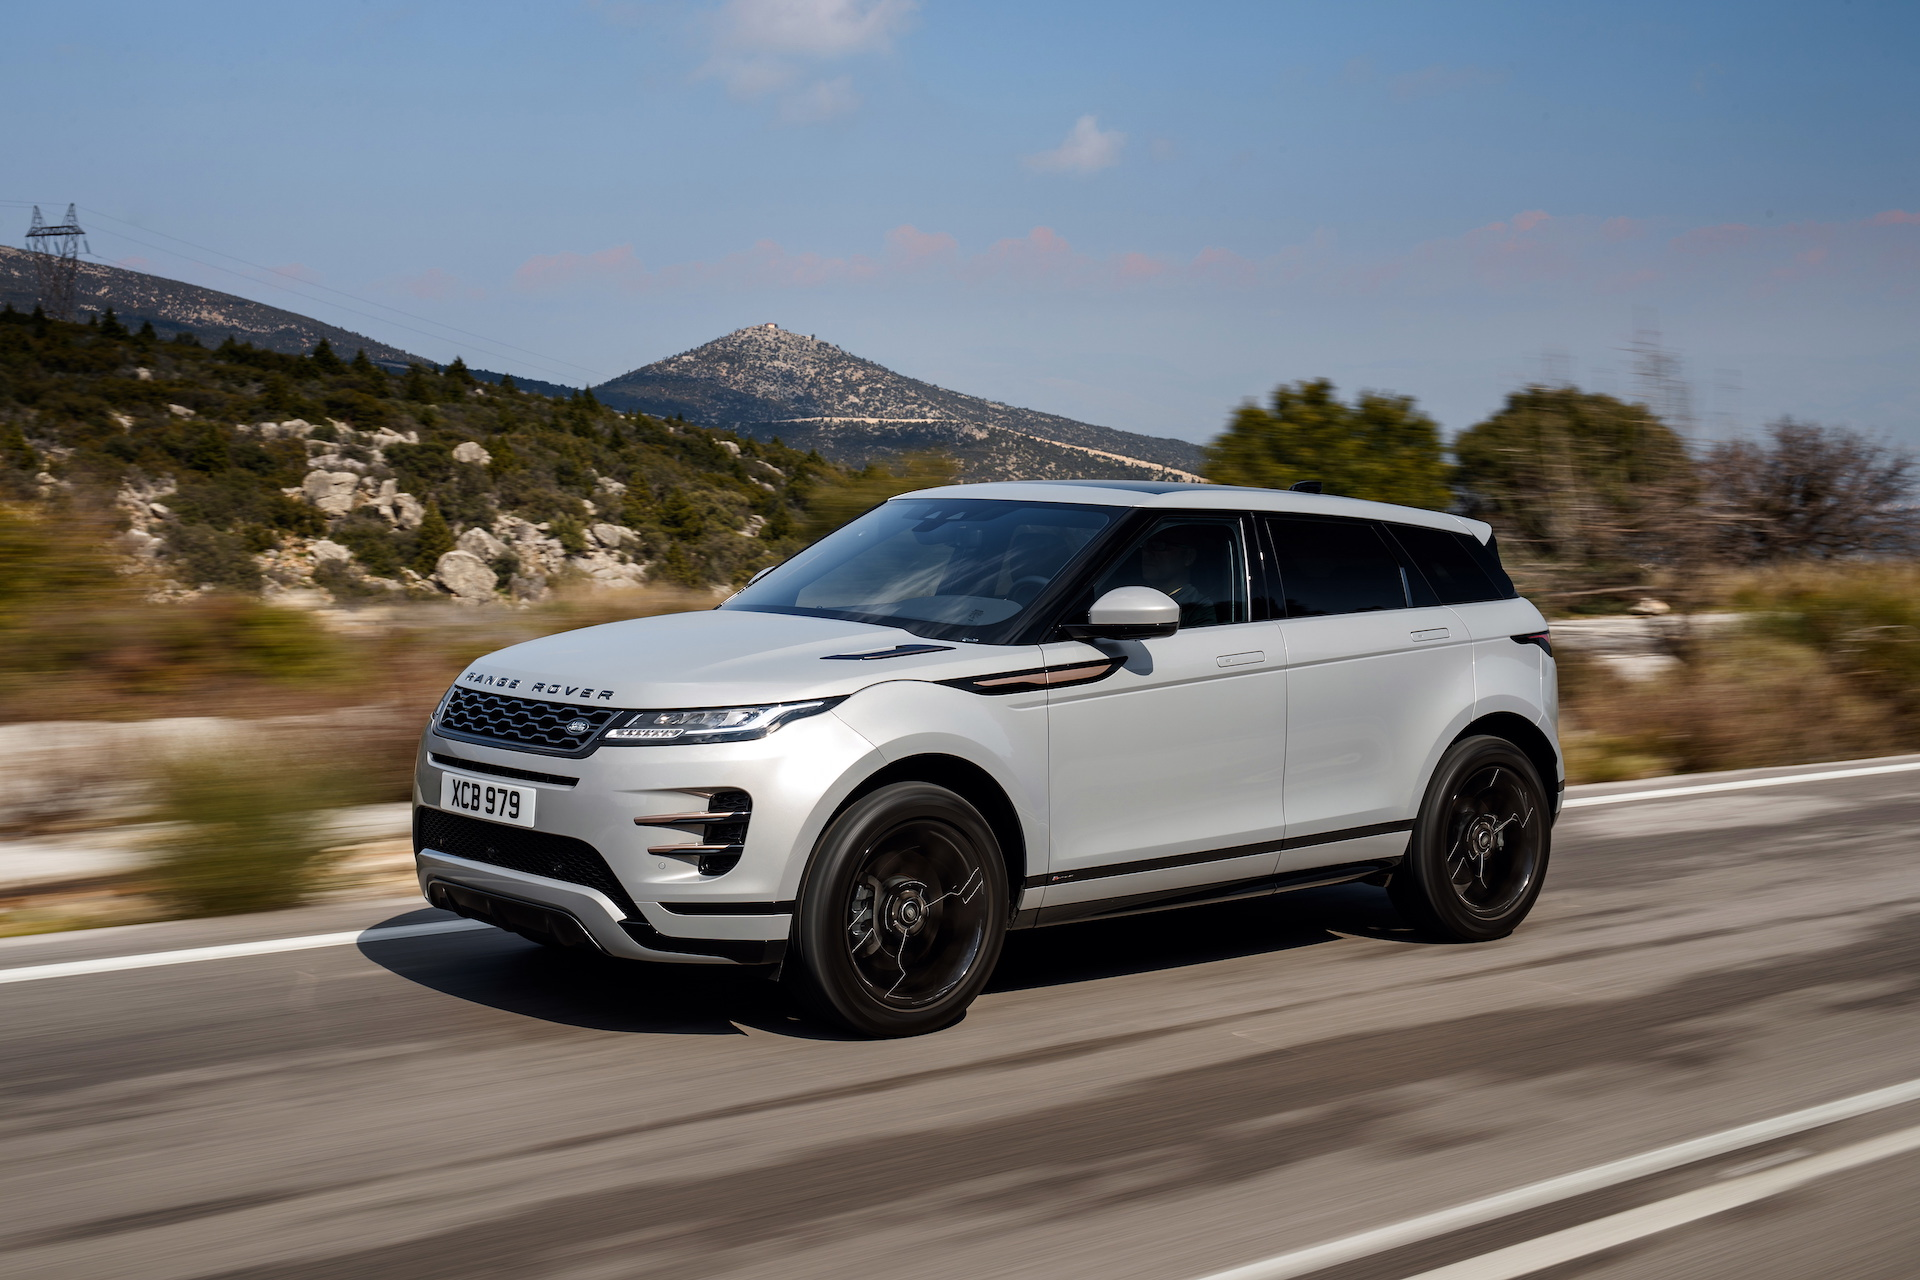 First Drive Review The 2020 Land Rover Range Rover Evoque Adds More Gray With Its Own Grecian Formula